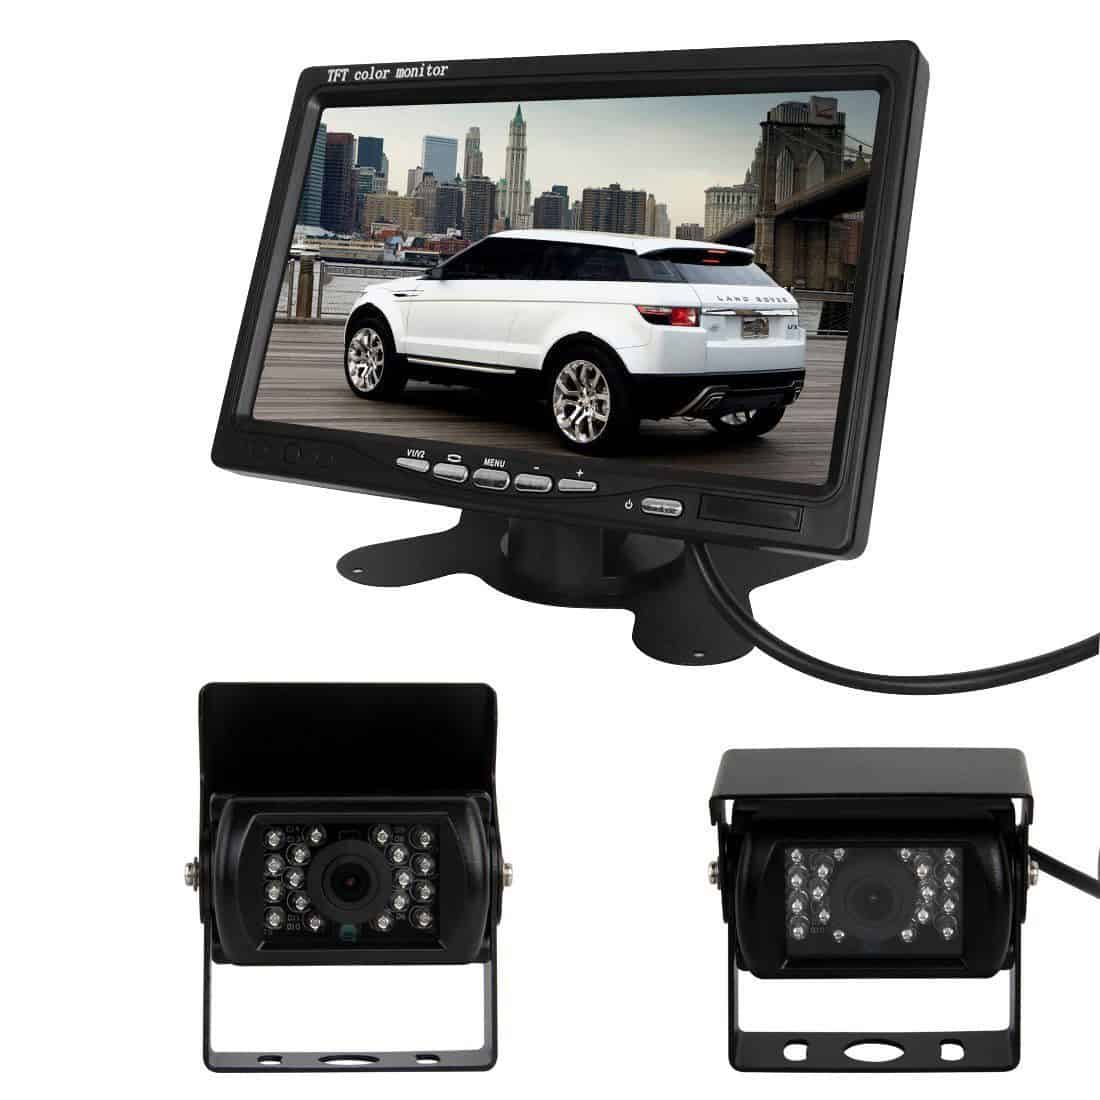 Pathson Car Rear View Kit for Bus Truck 7-inch LCD Monitor